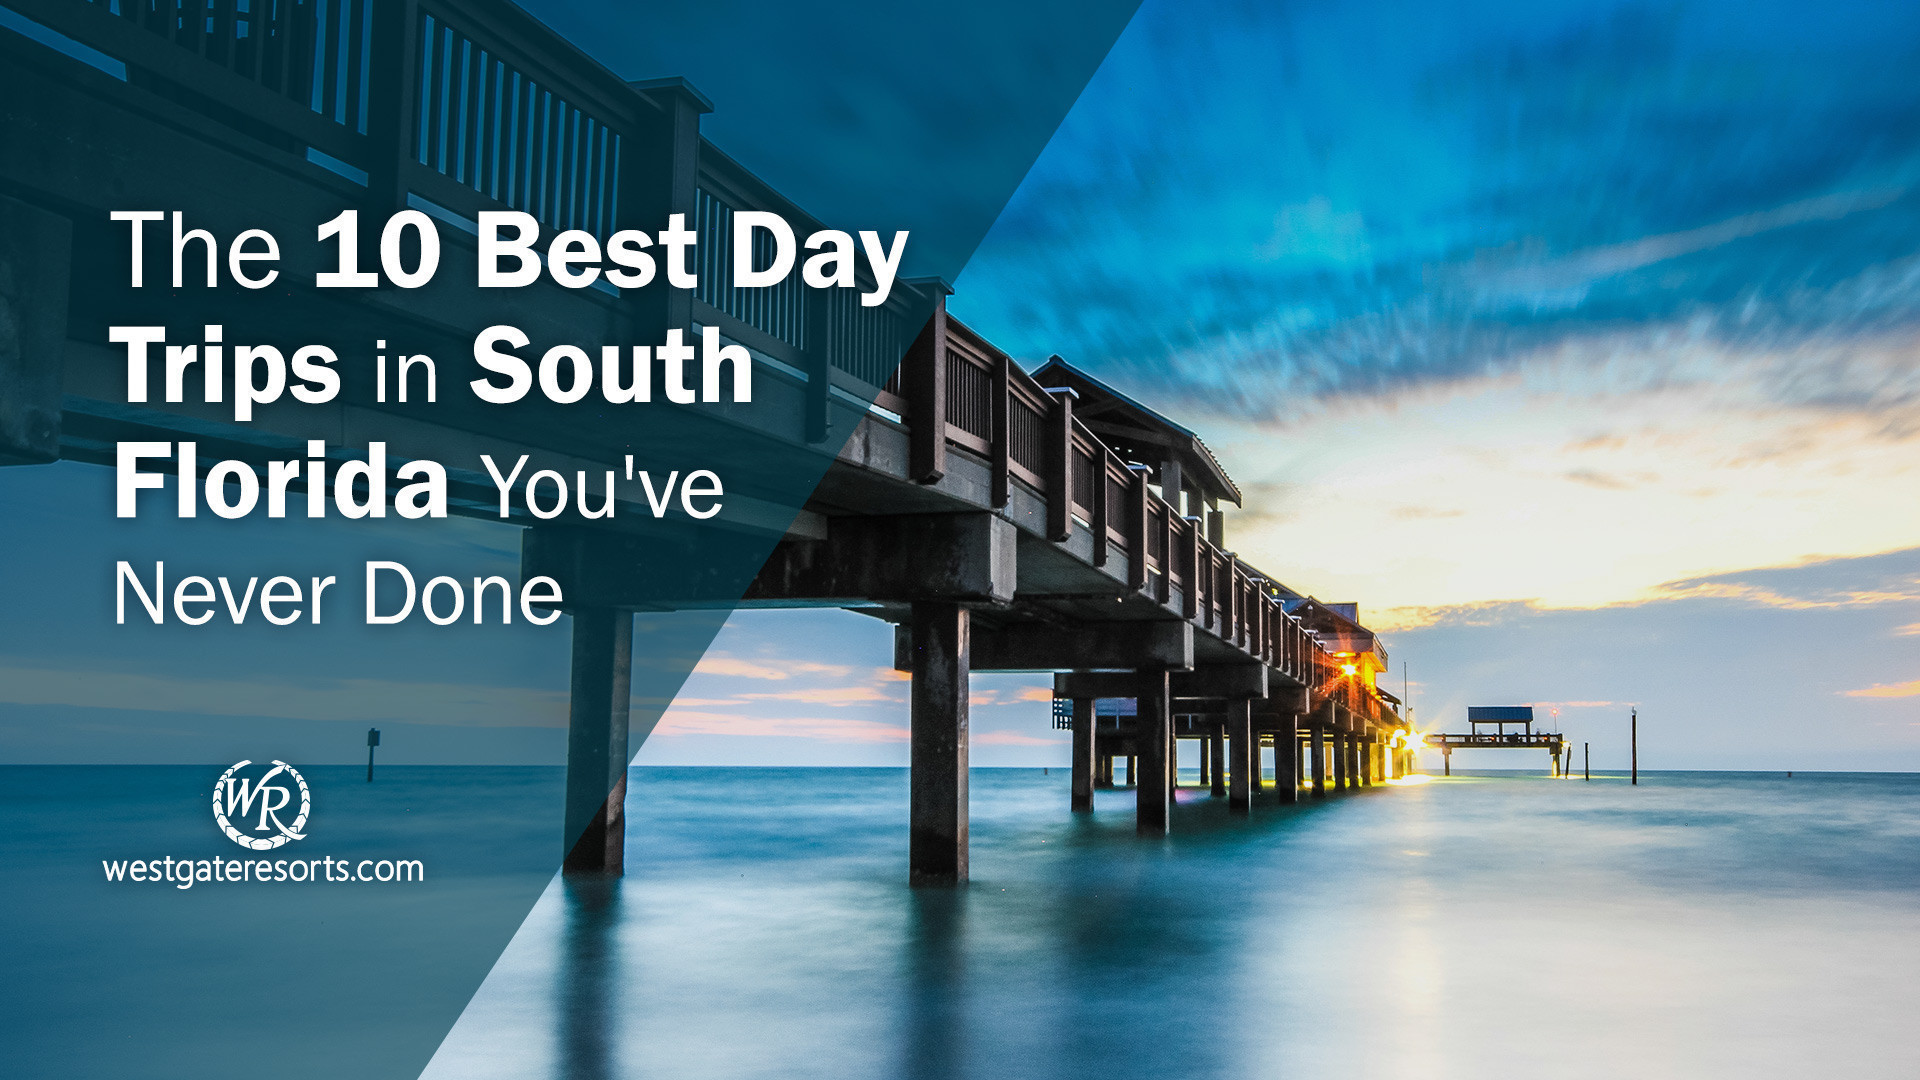 The 10 Best Day Trips in South Florida You've Never Done | Florida Day Trips & Day Excursions Guide